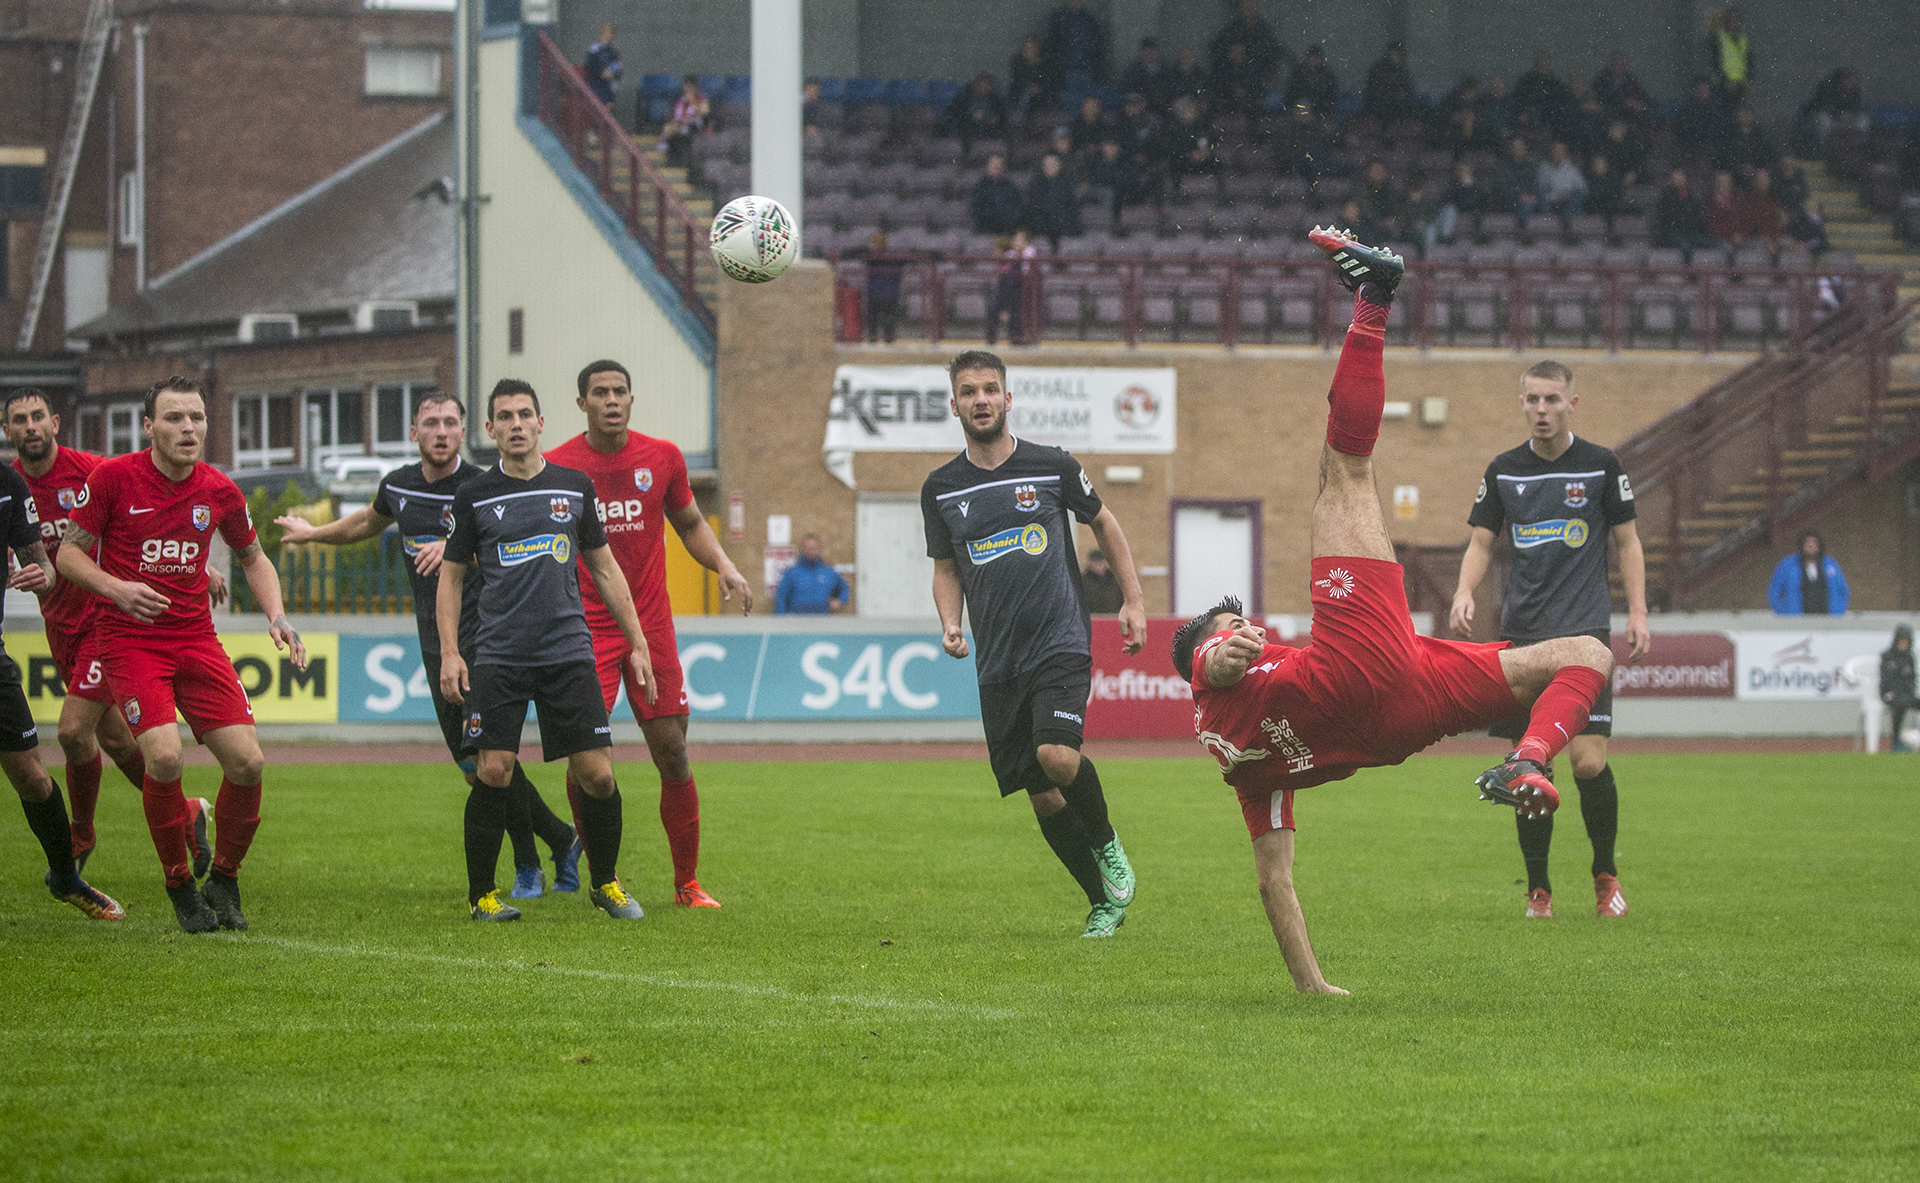 Michael Wilde attempts an acrobatic bicycle kick | © NCM Media